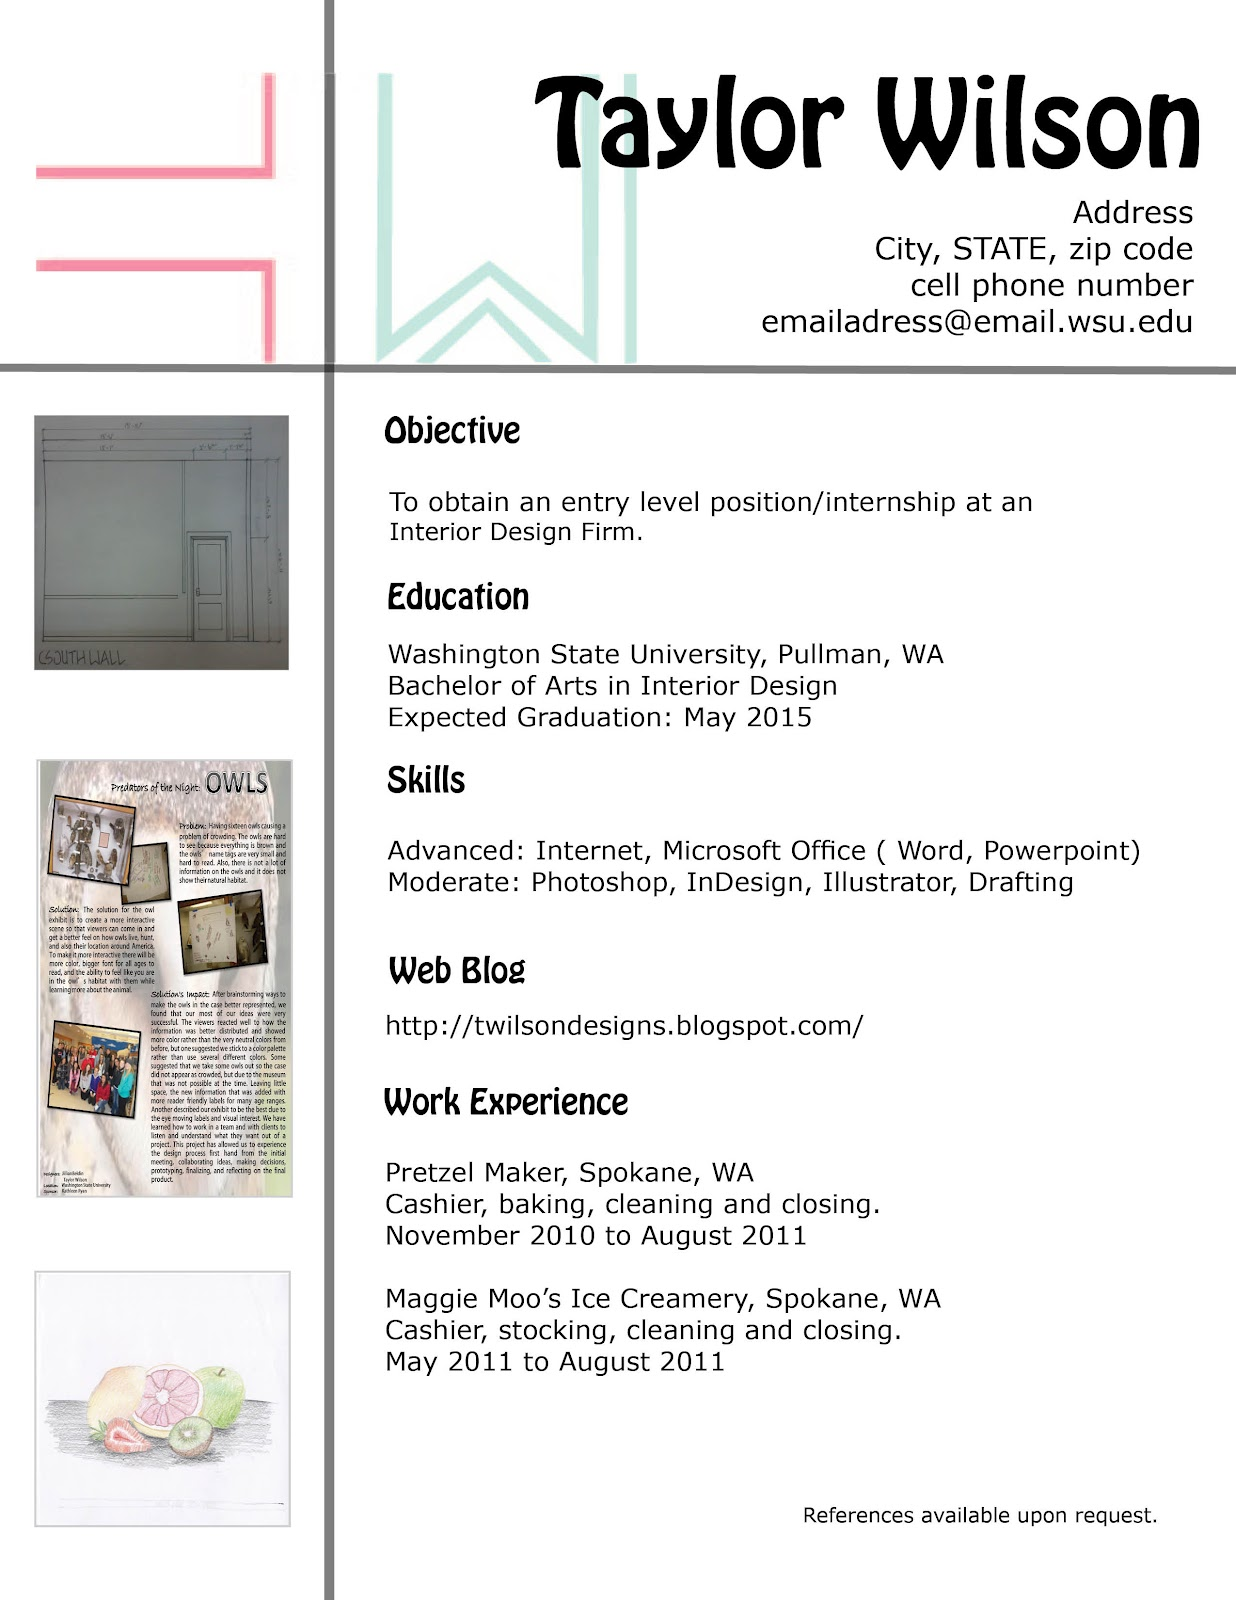 Jessica Interior Design Portfolio Resume - Quoteko.